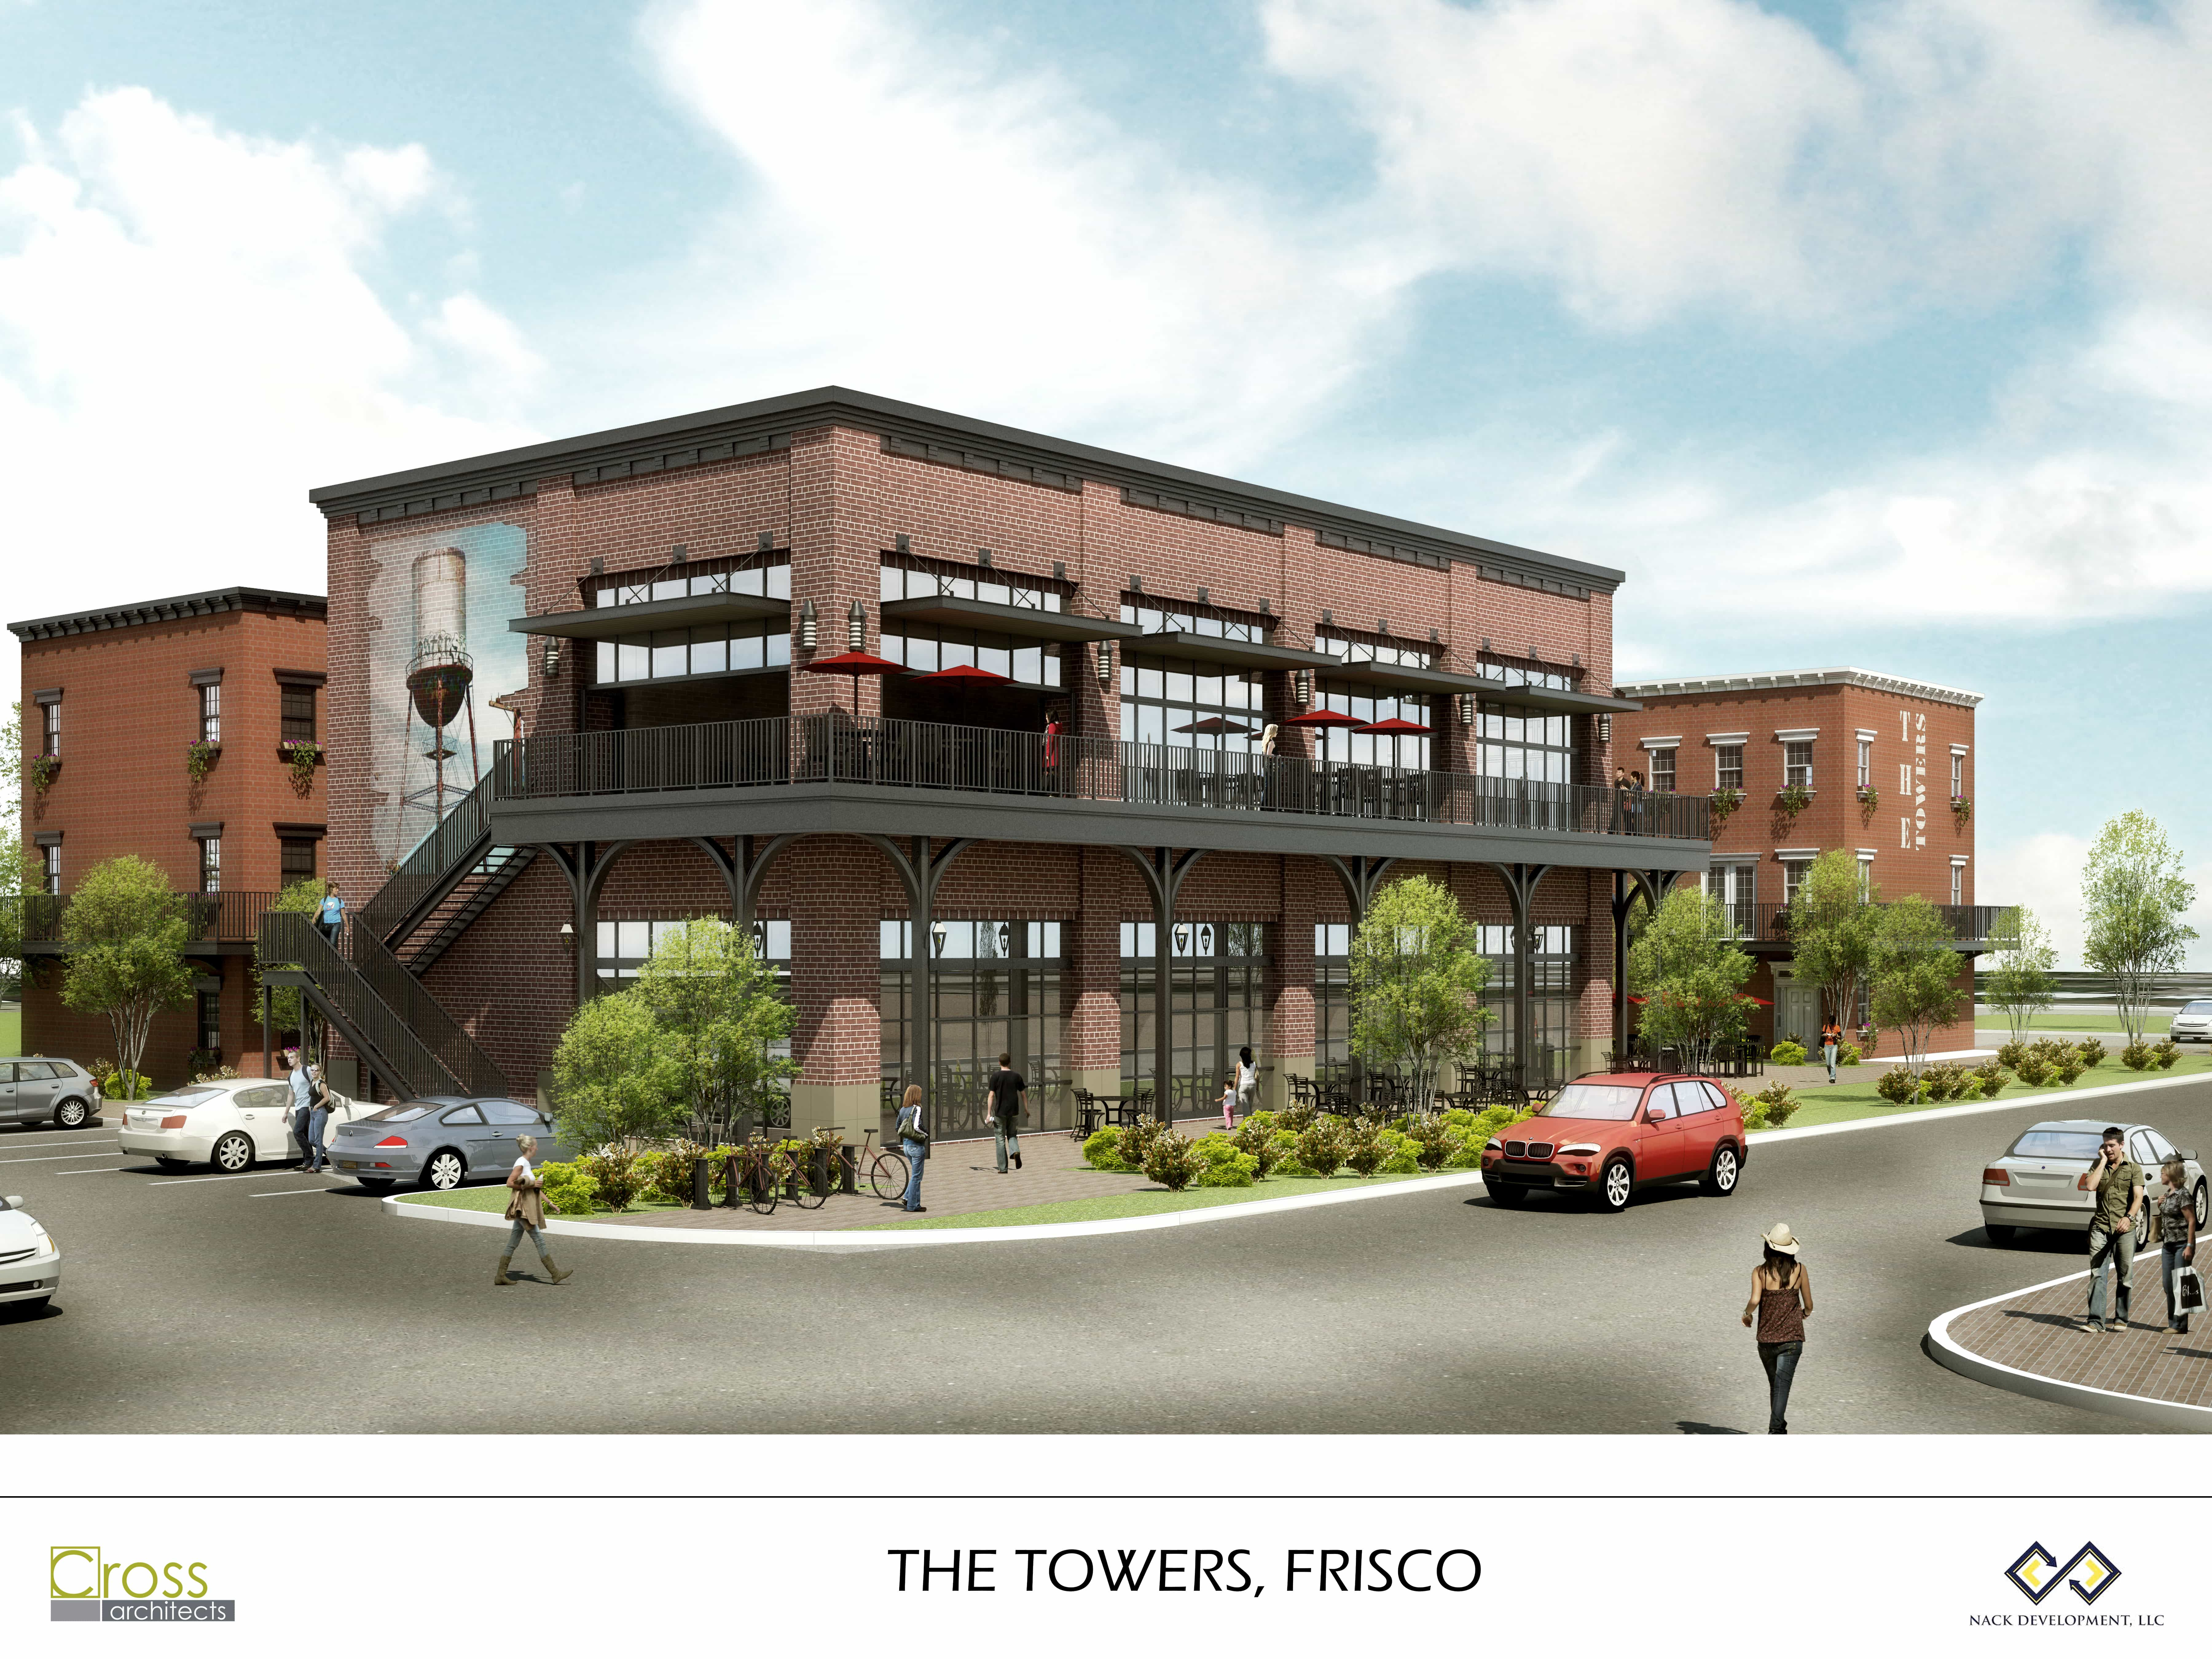 The Towers - Frisco - Retail Rendering